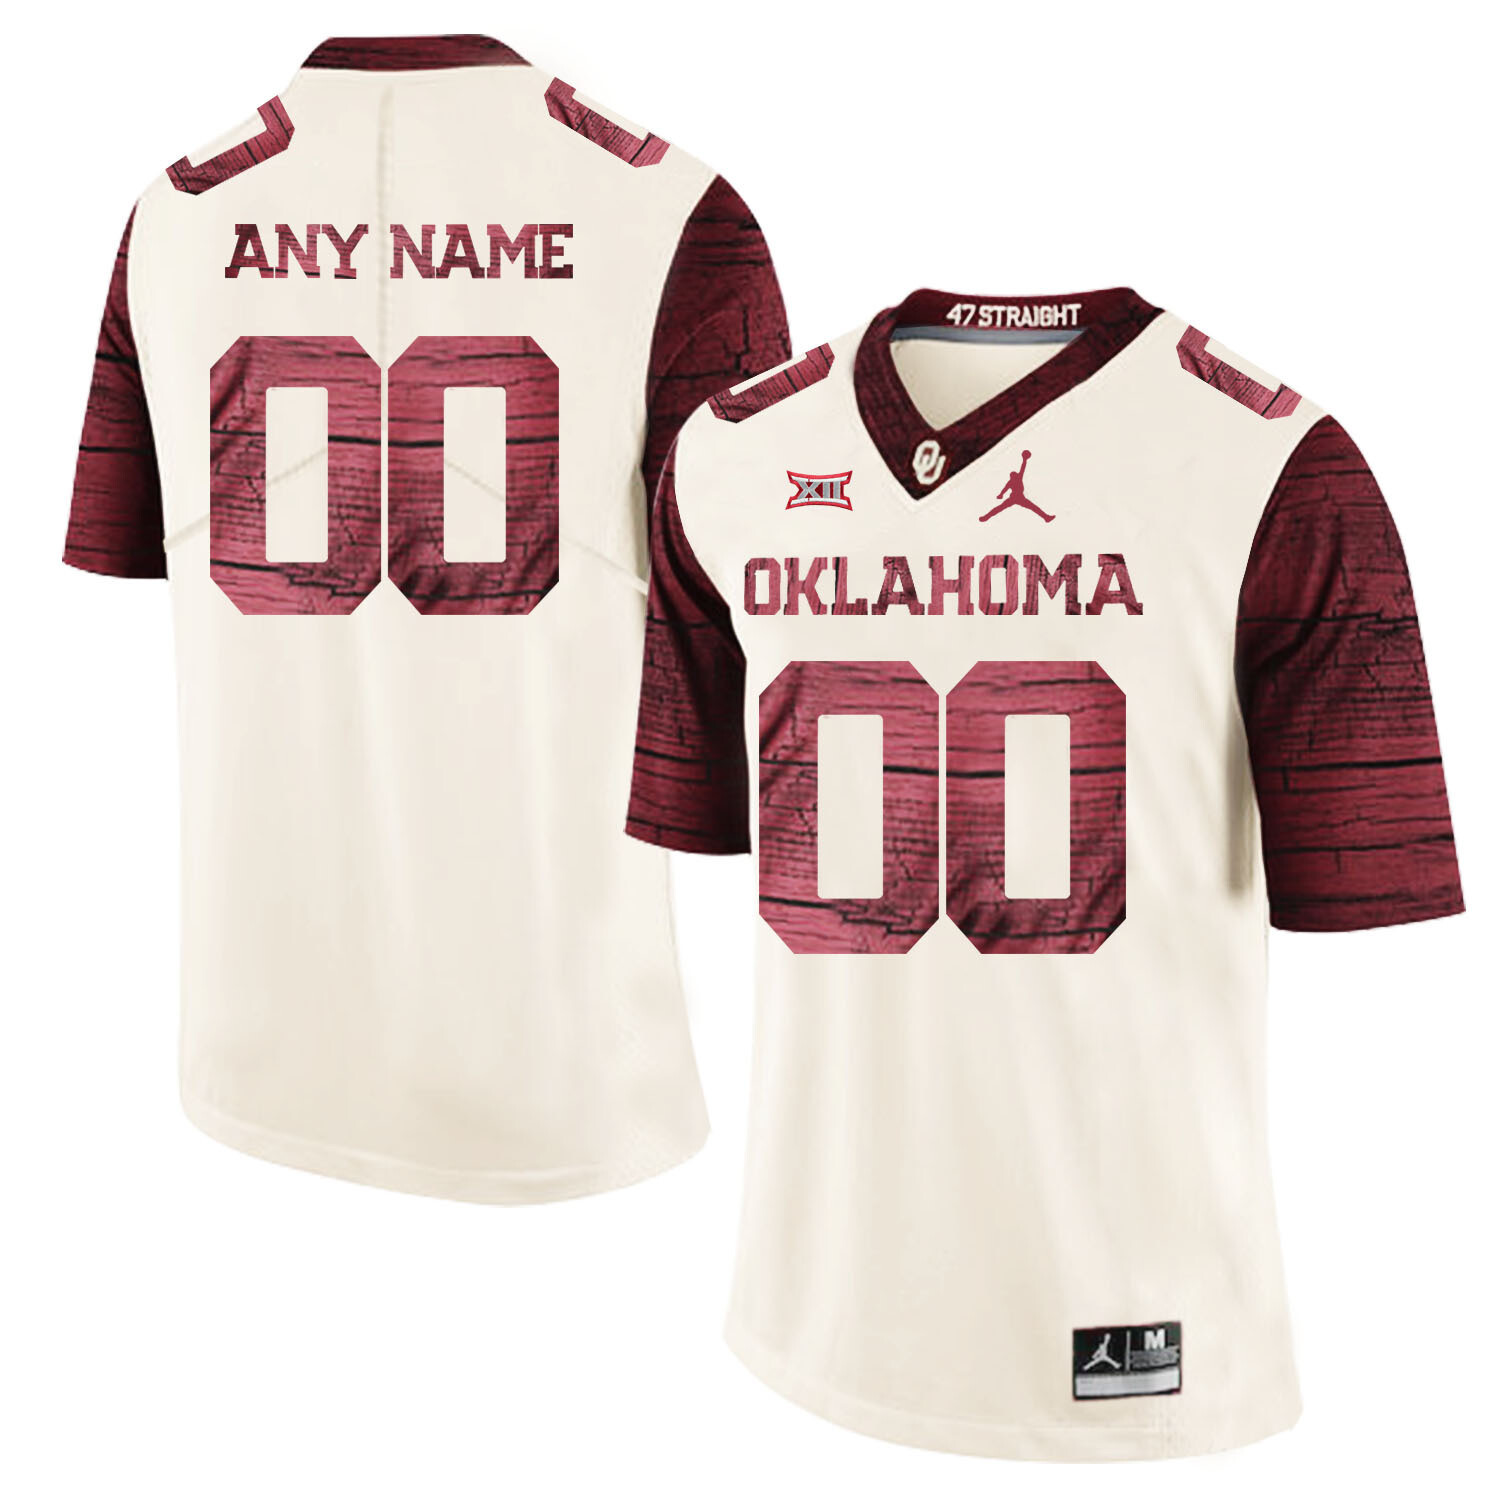 Oklahoma Sooners Custom Name and Number Football Jersey White Stitched